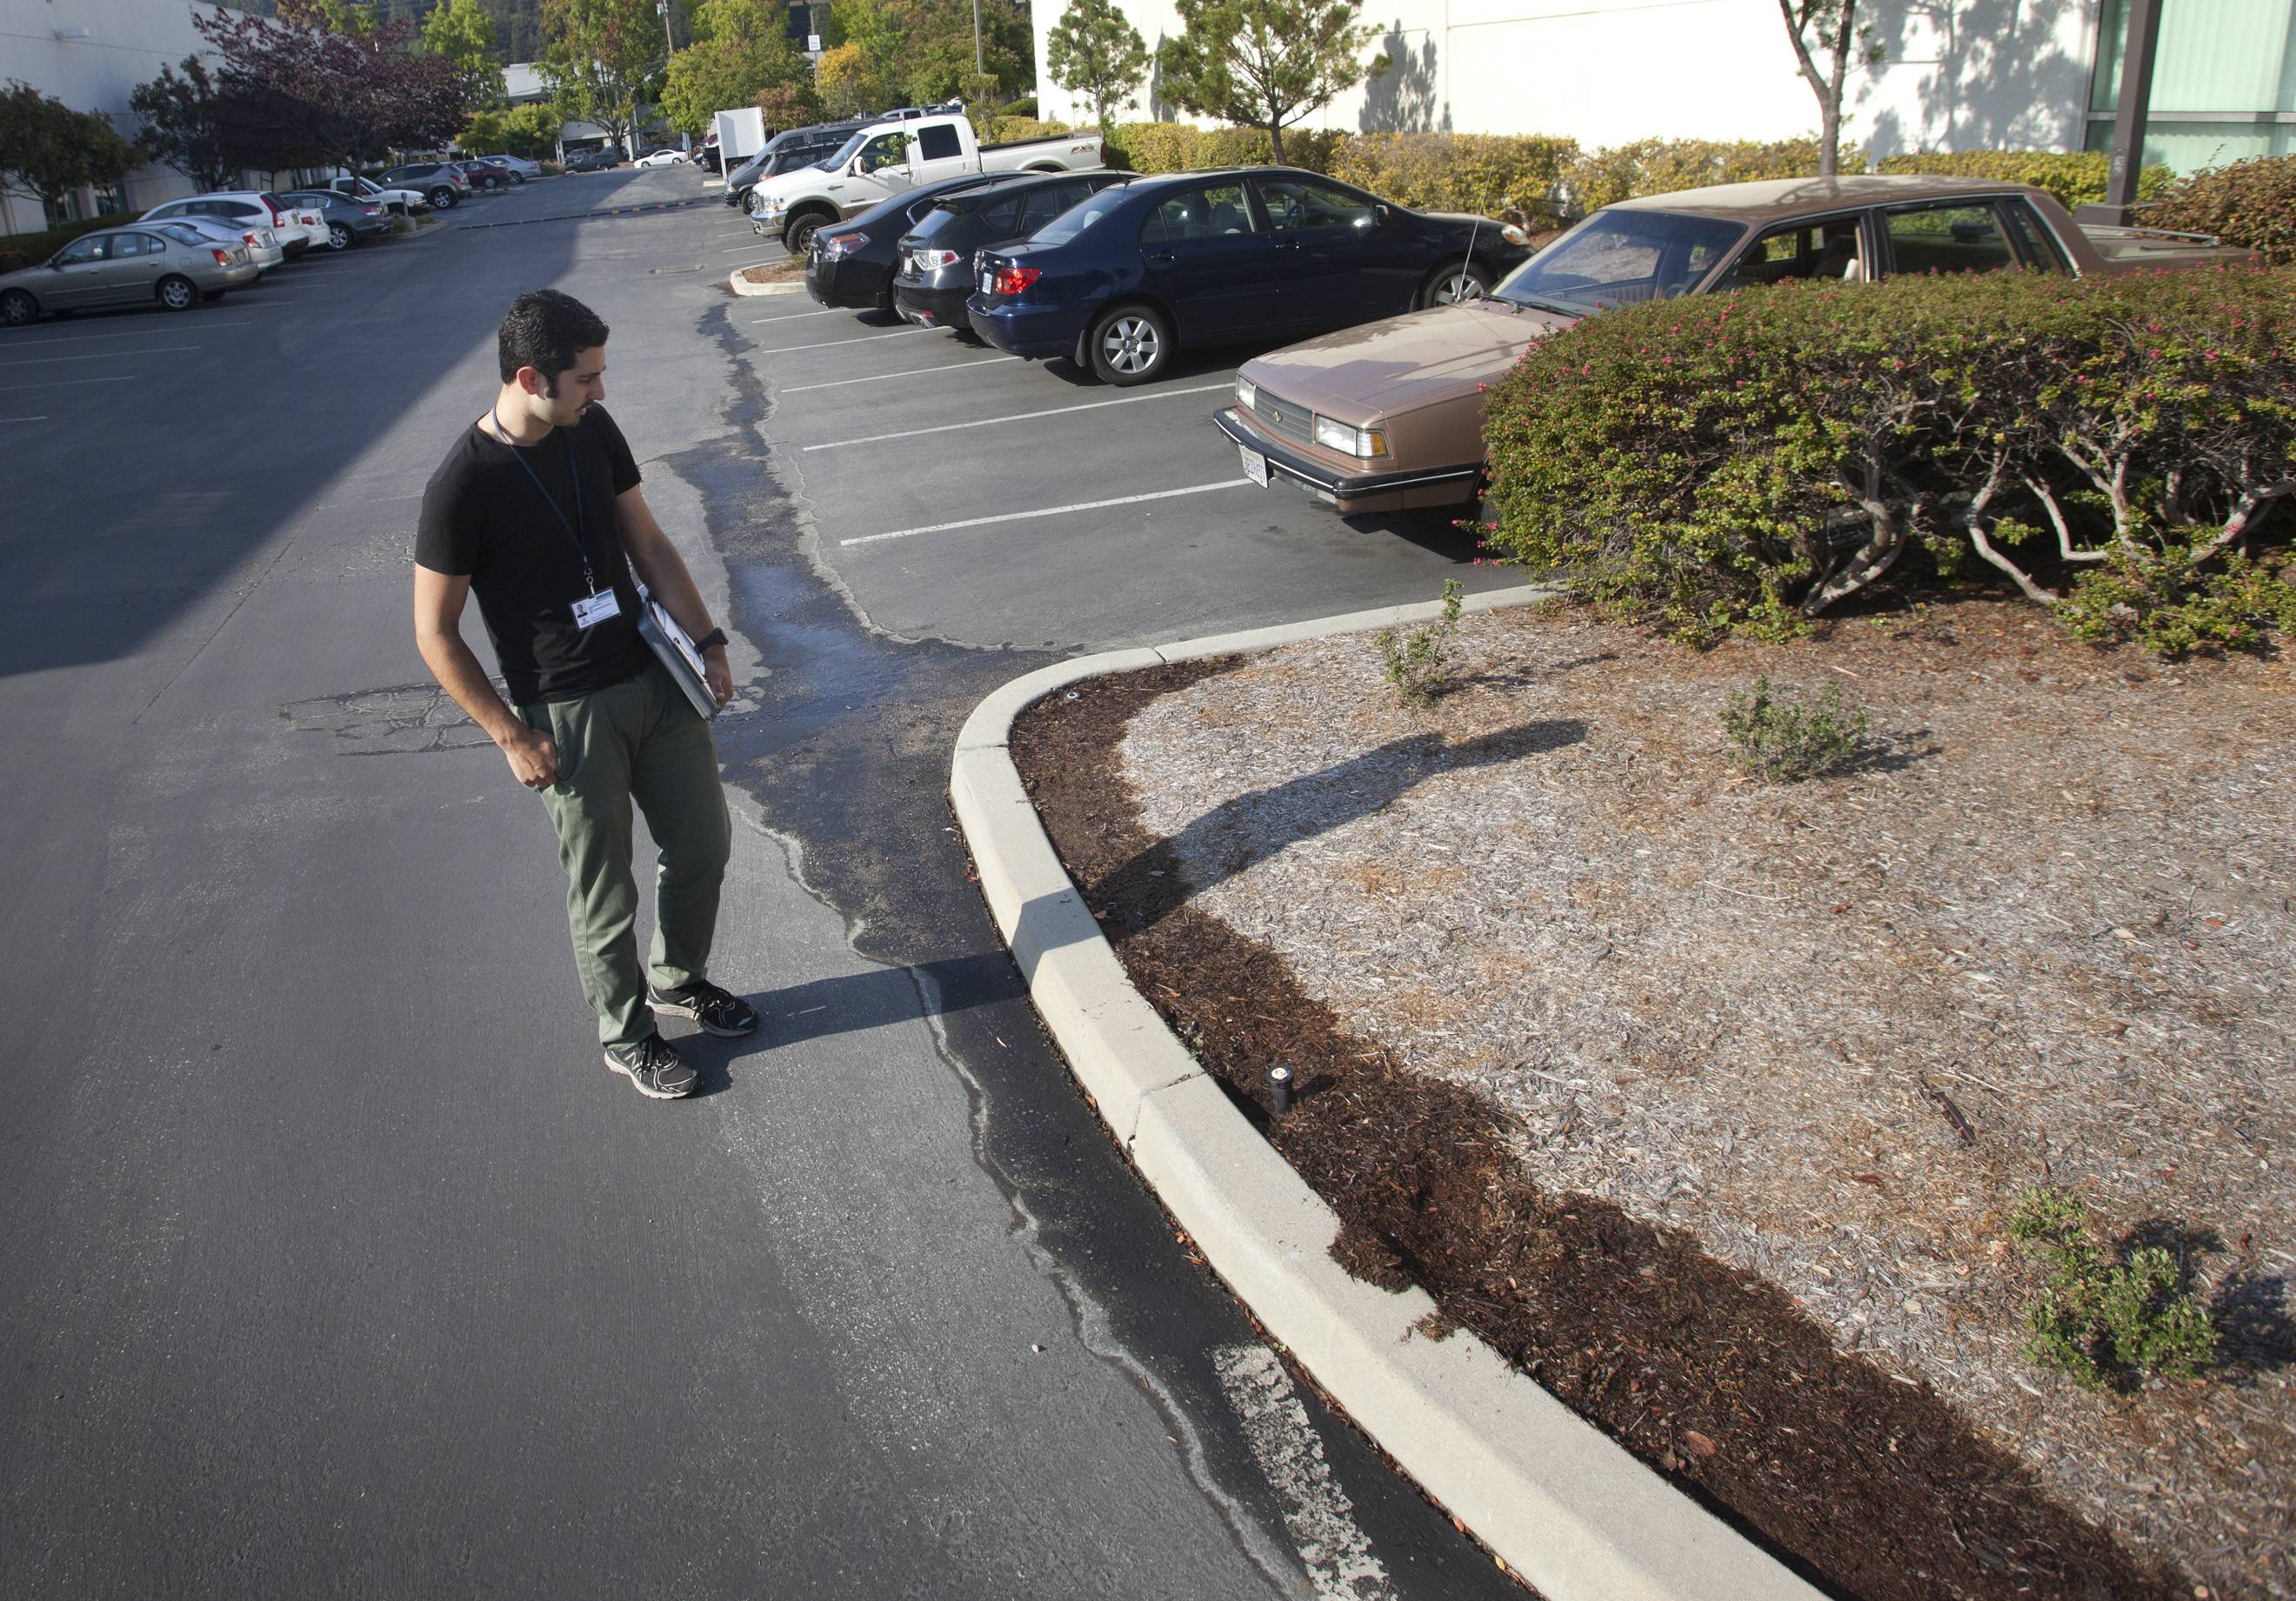 Nik Martinelli, a water conservation specialist for the city of Santa Cruz, looks at water run-off from a plant irrigation system at an office park in Santa Cruz, Calif., Tuesday, July 29, 2014. Unlike most cities that have either groundwater, a connection to state water canals, or vast reservoirs, Santa Cruz is among those worst hit by the drought because it relies almost exclusively on storm runoff into a river, some creeks and an aging reservoir.